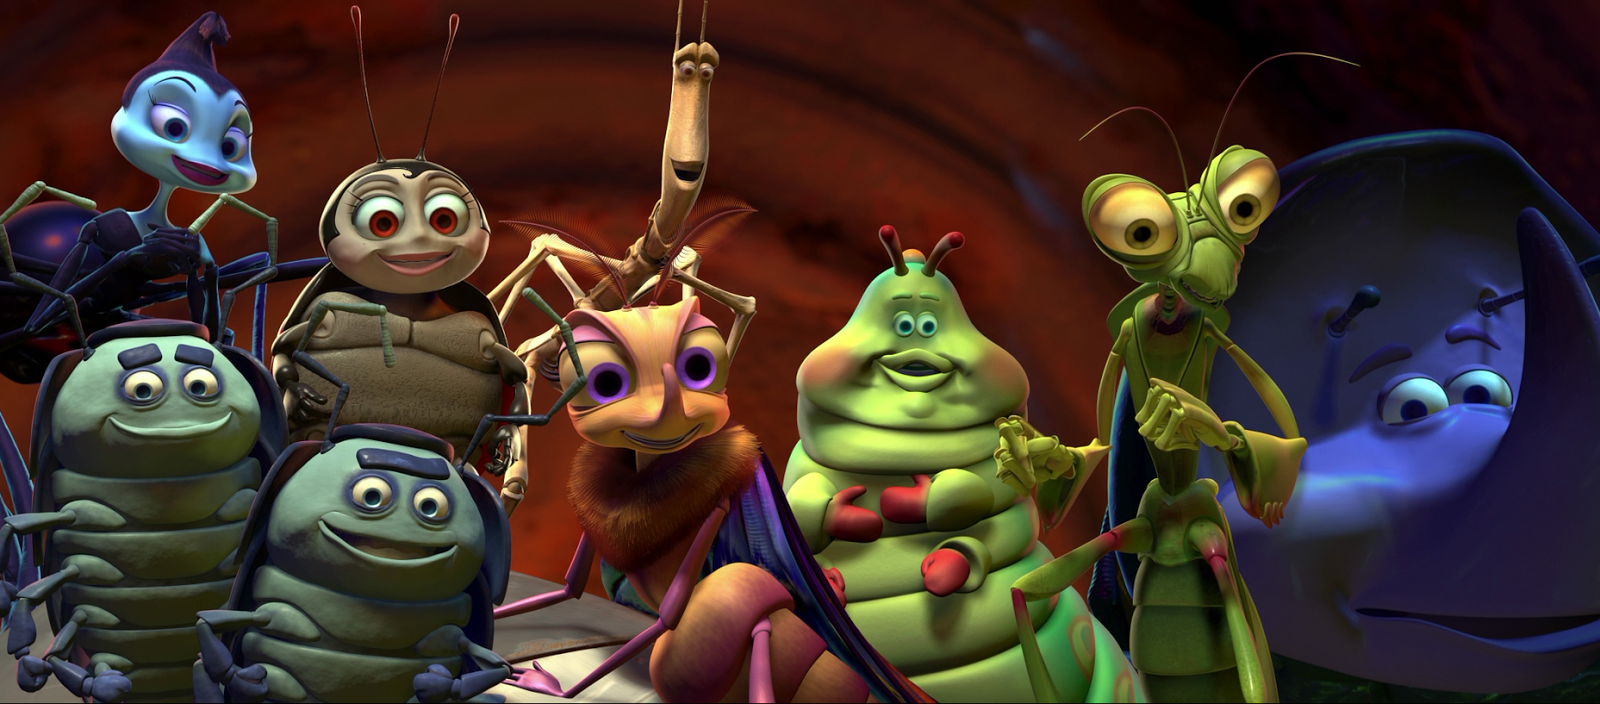 Bugs Life Characters A bug's life